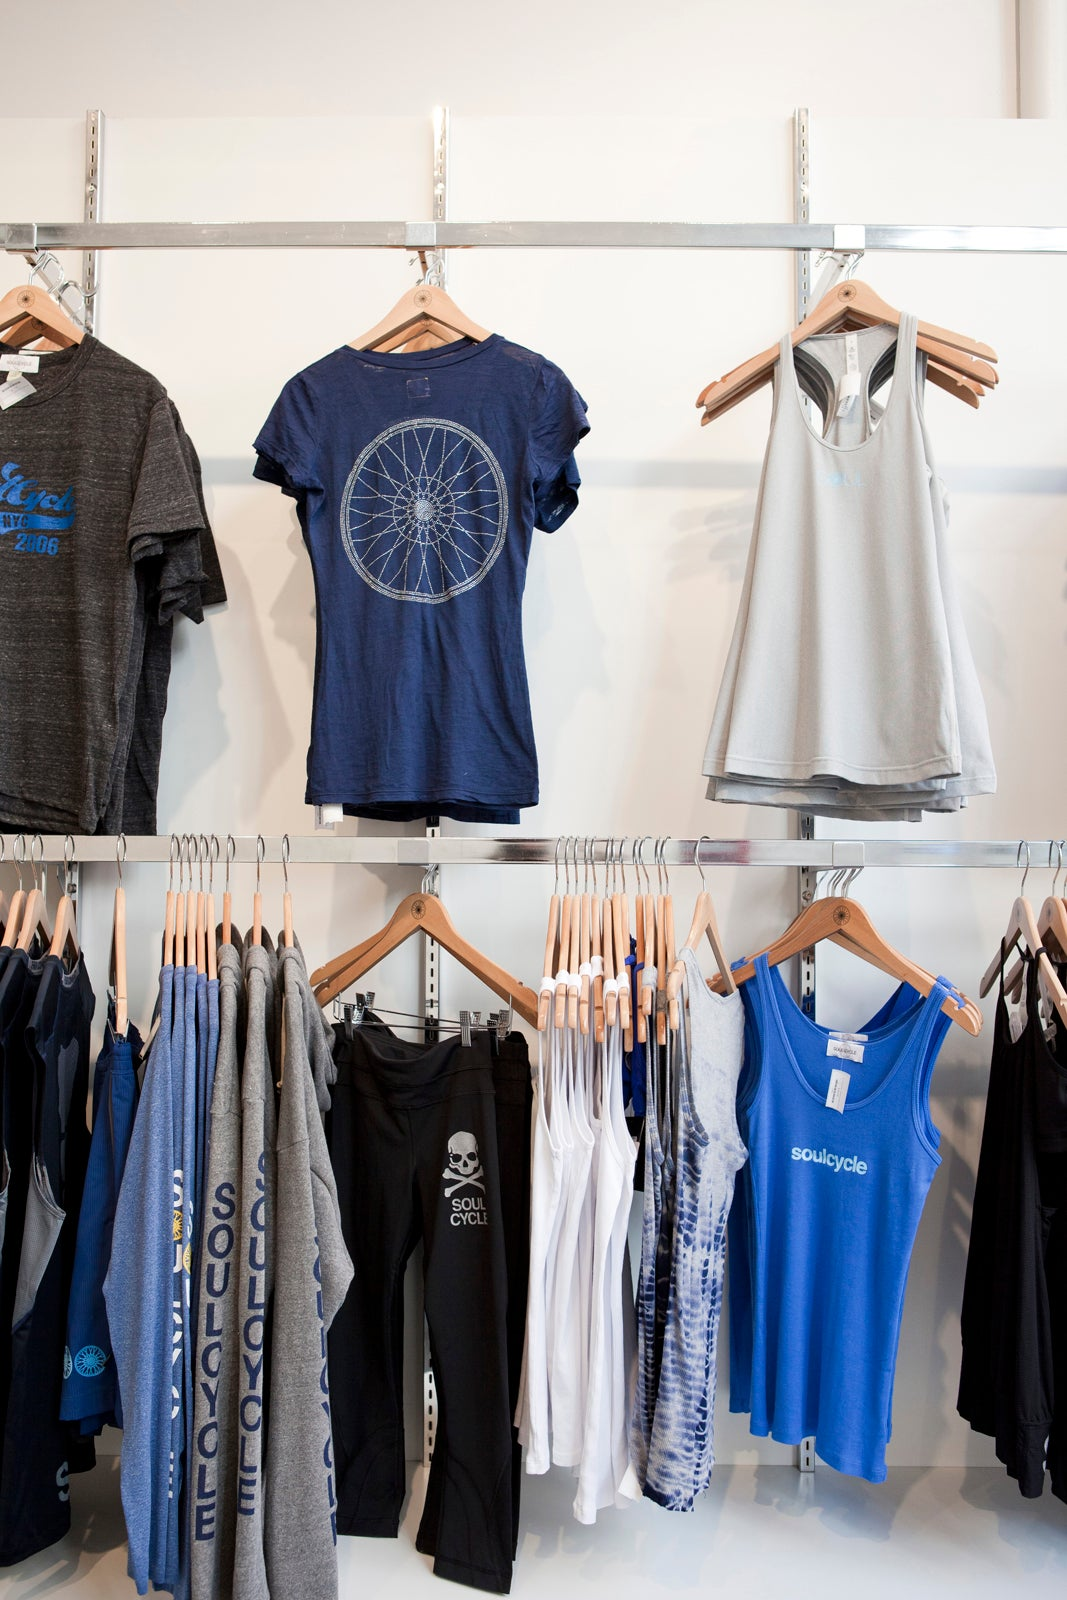 SoulCycle - Inside SoulCycle's NYC Studio